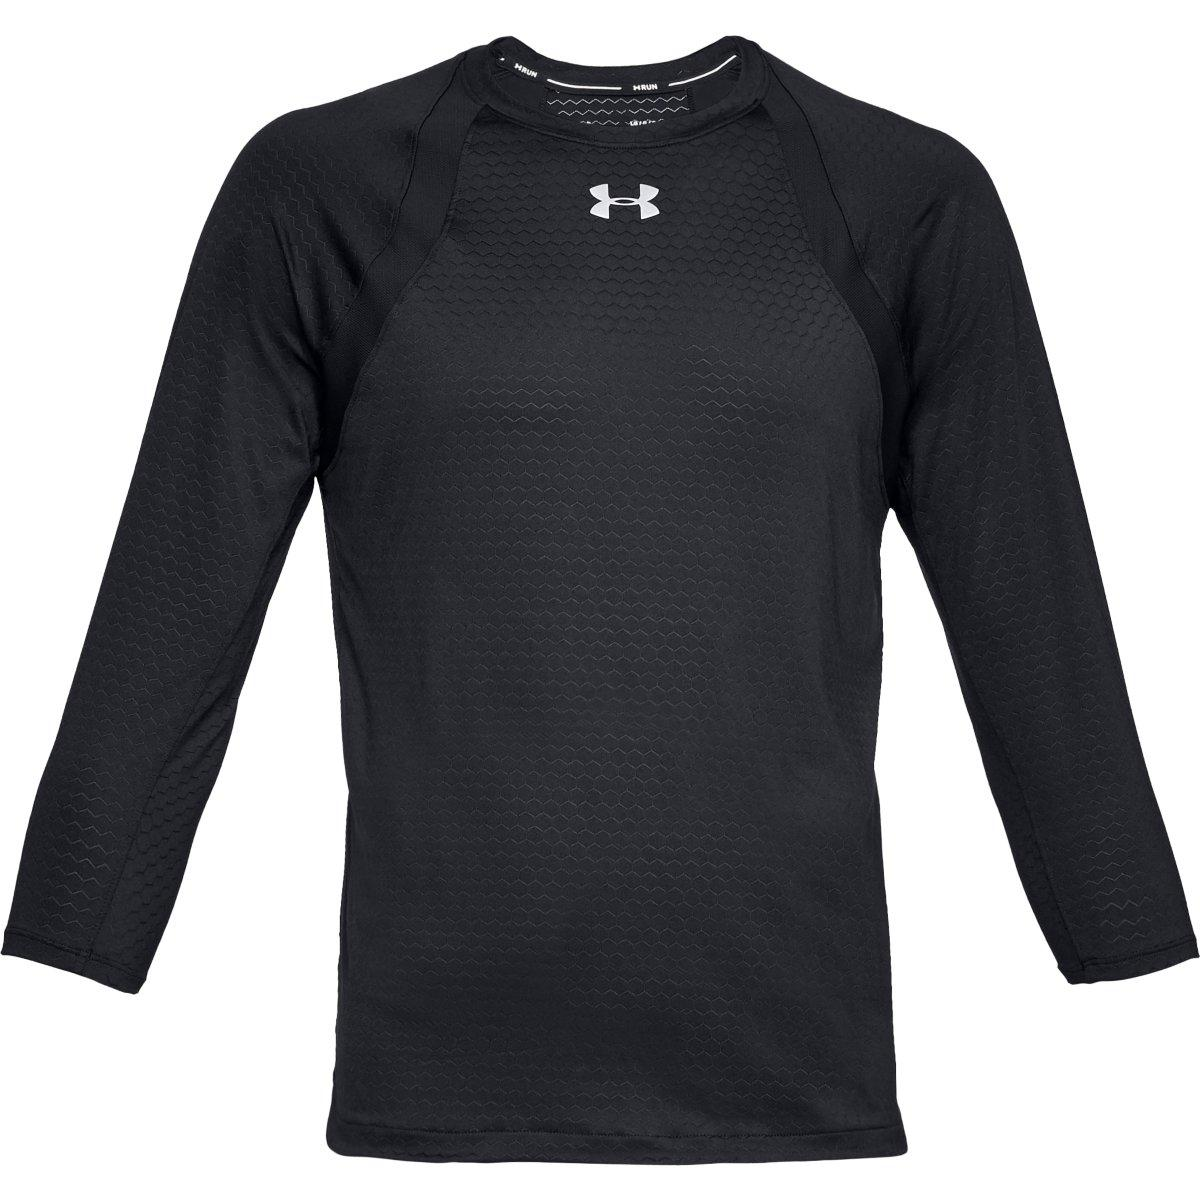 Tričko Under Armour Hexdelta 3/4 Sleeve,L